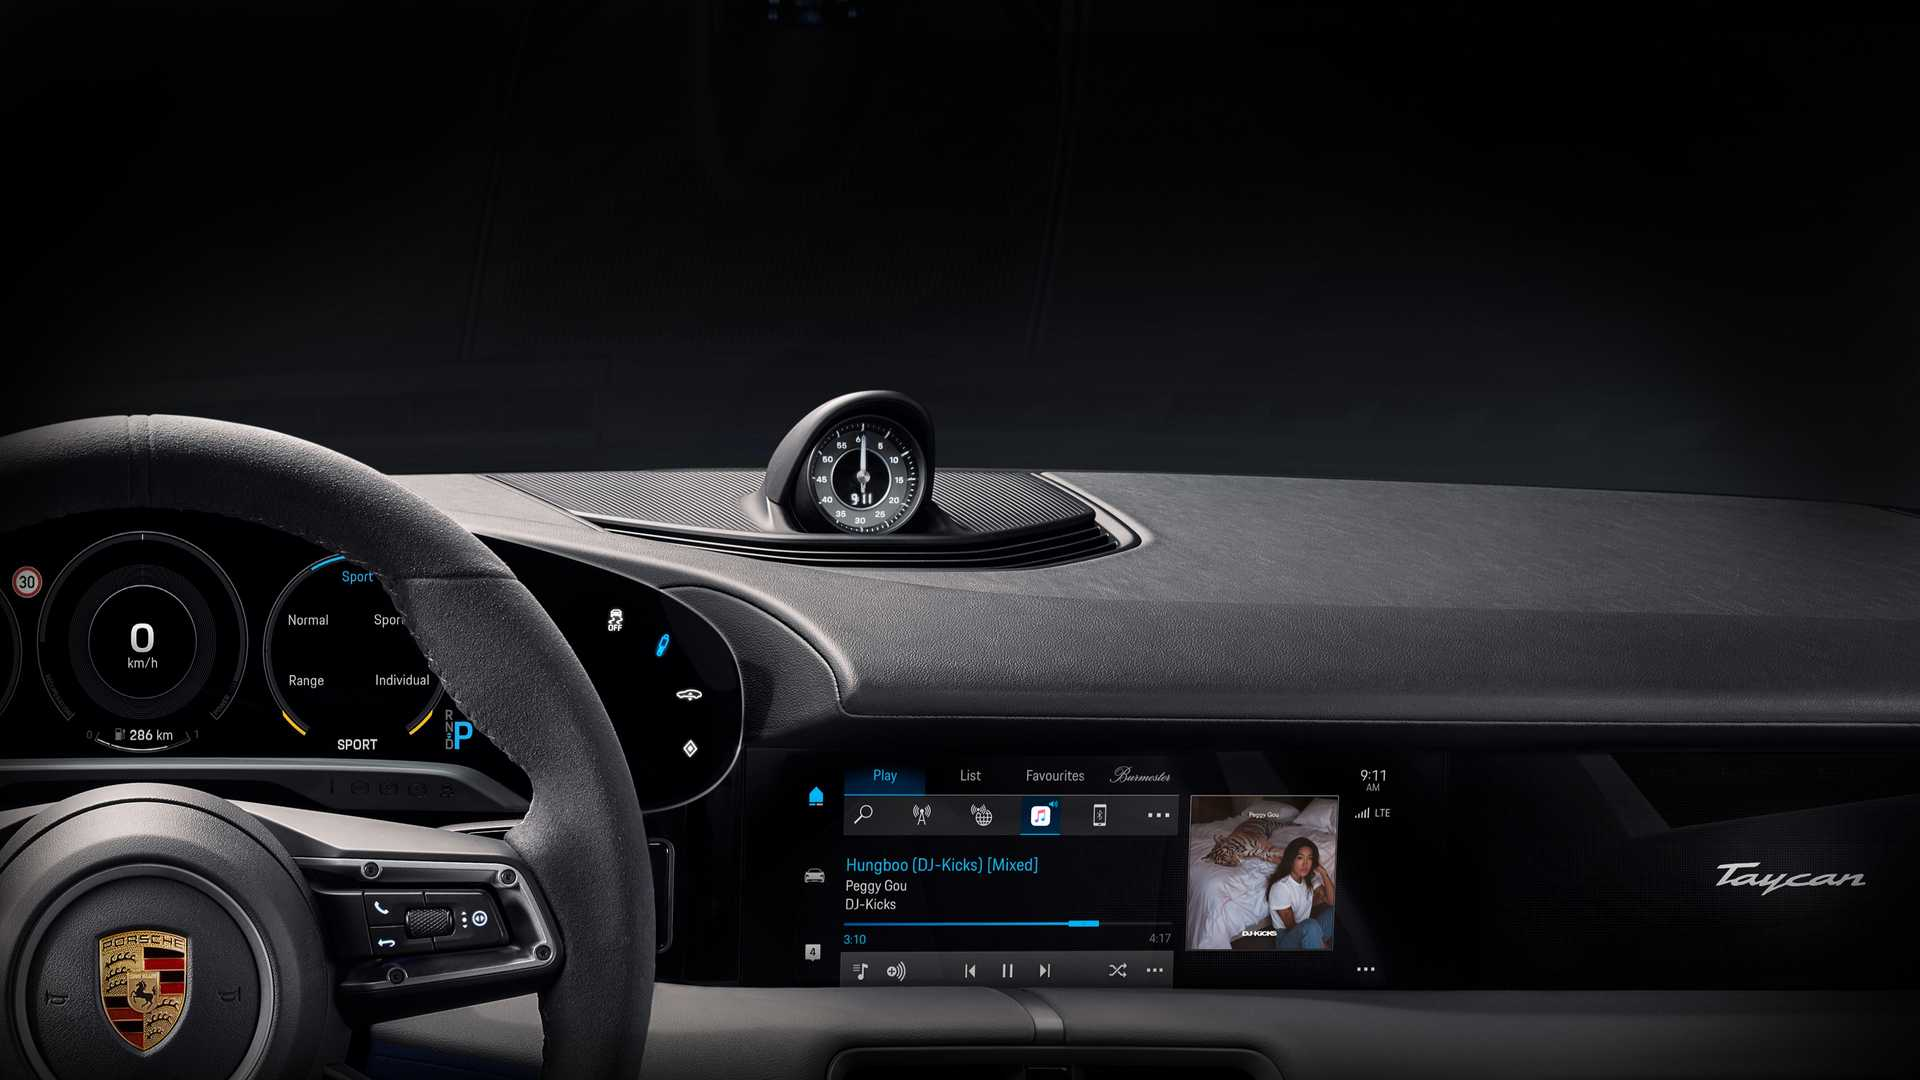 The first official photo revealed by Porsche shows some of the dashboard of the impending Taycan EV.